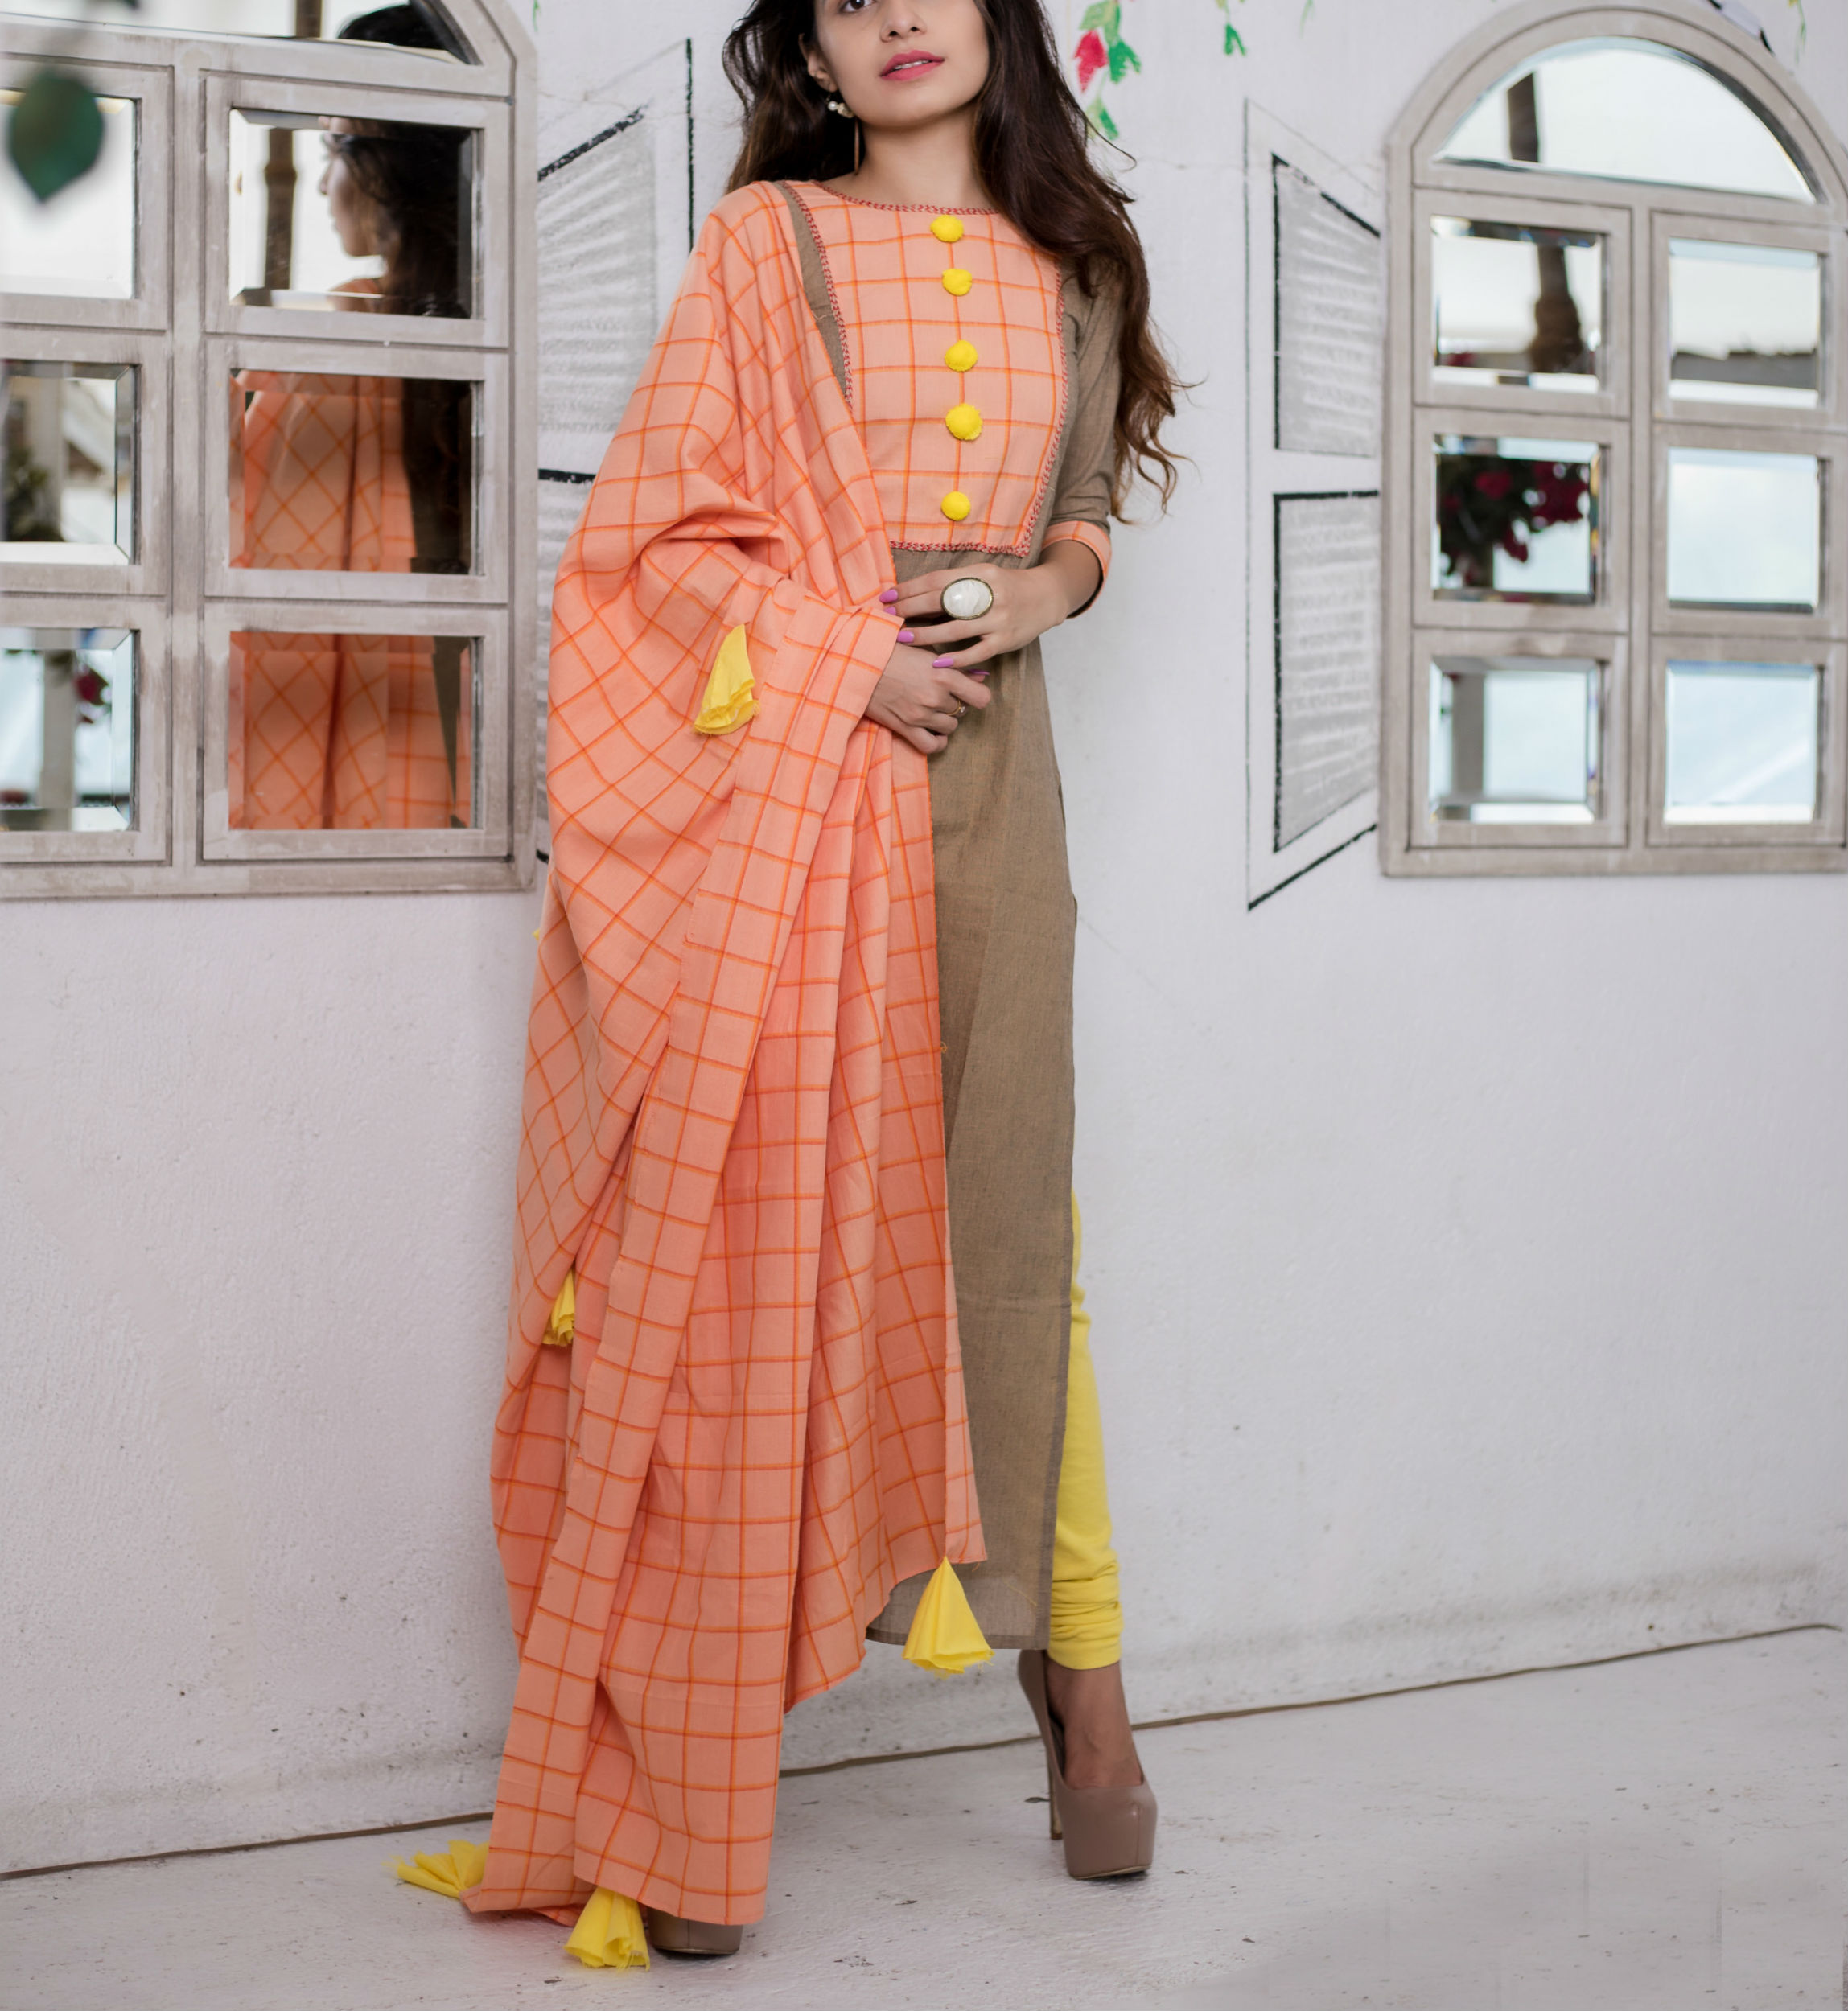 BROWN DRESS WITH DUPATTA